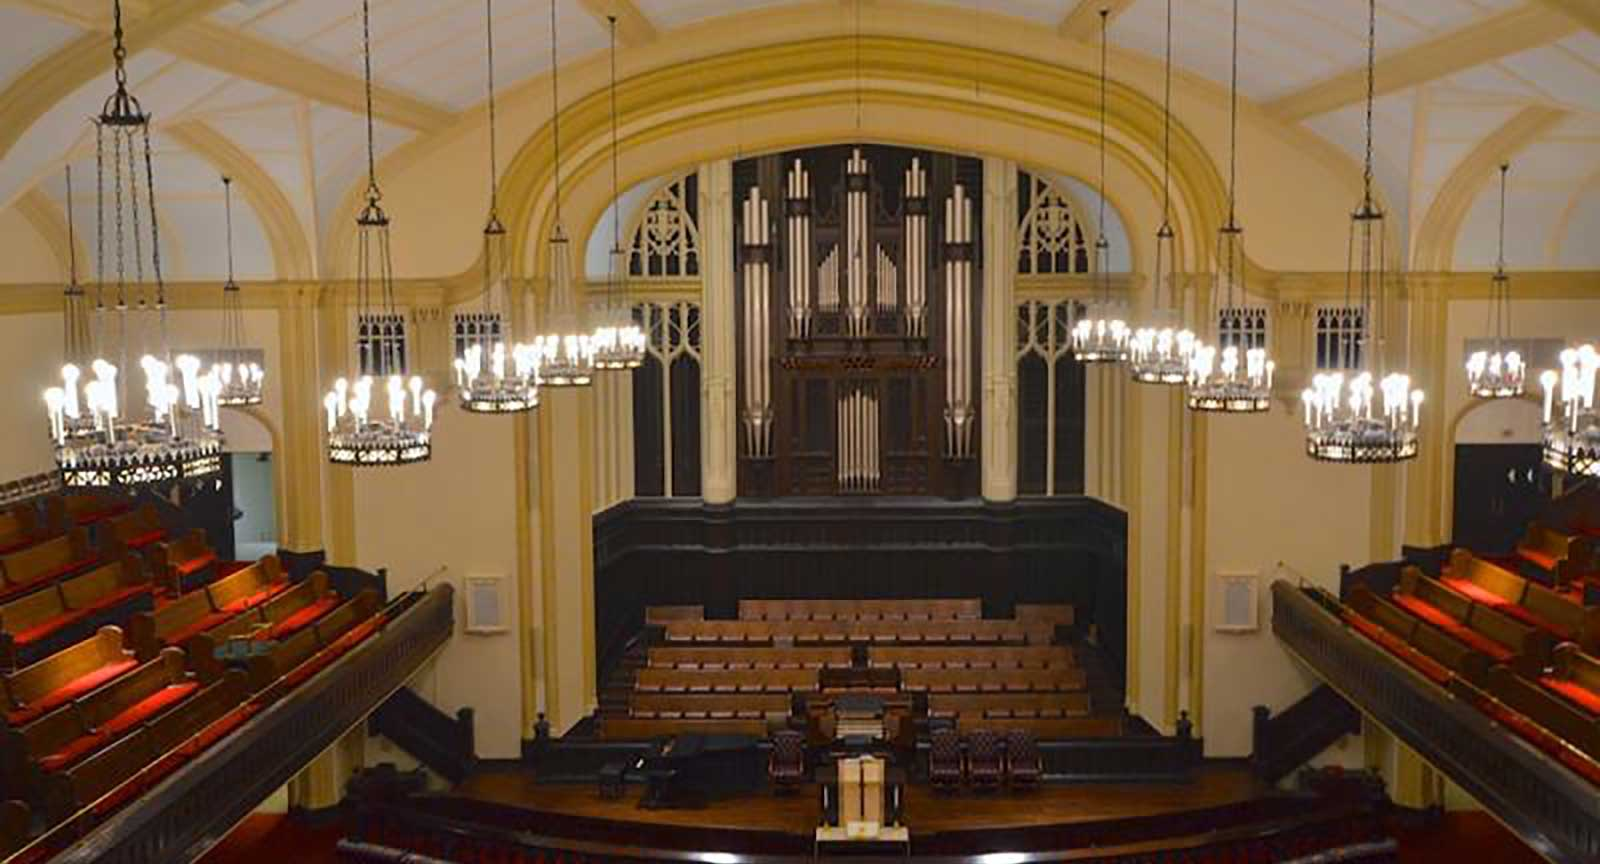 Dallas Arts District First United Methodist Church Interior